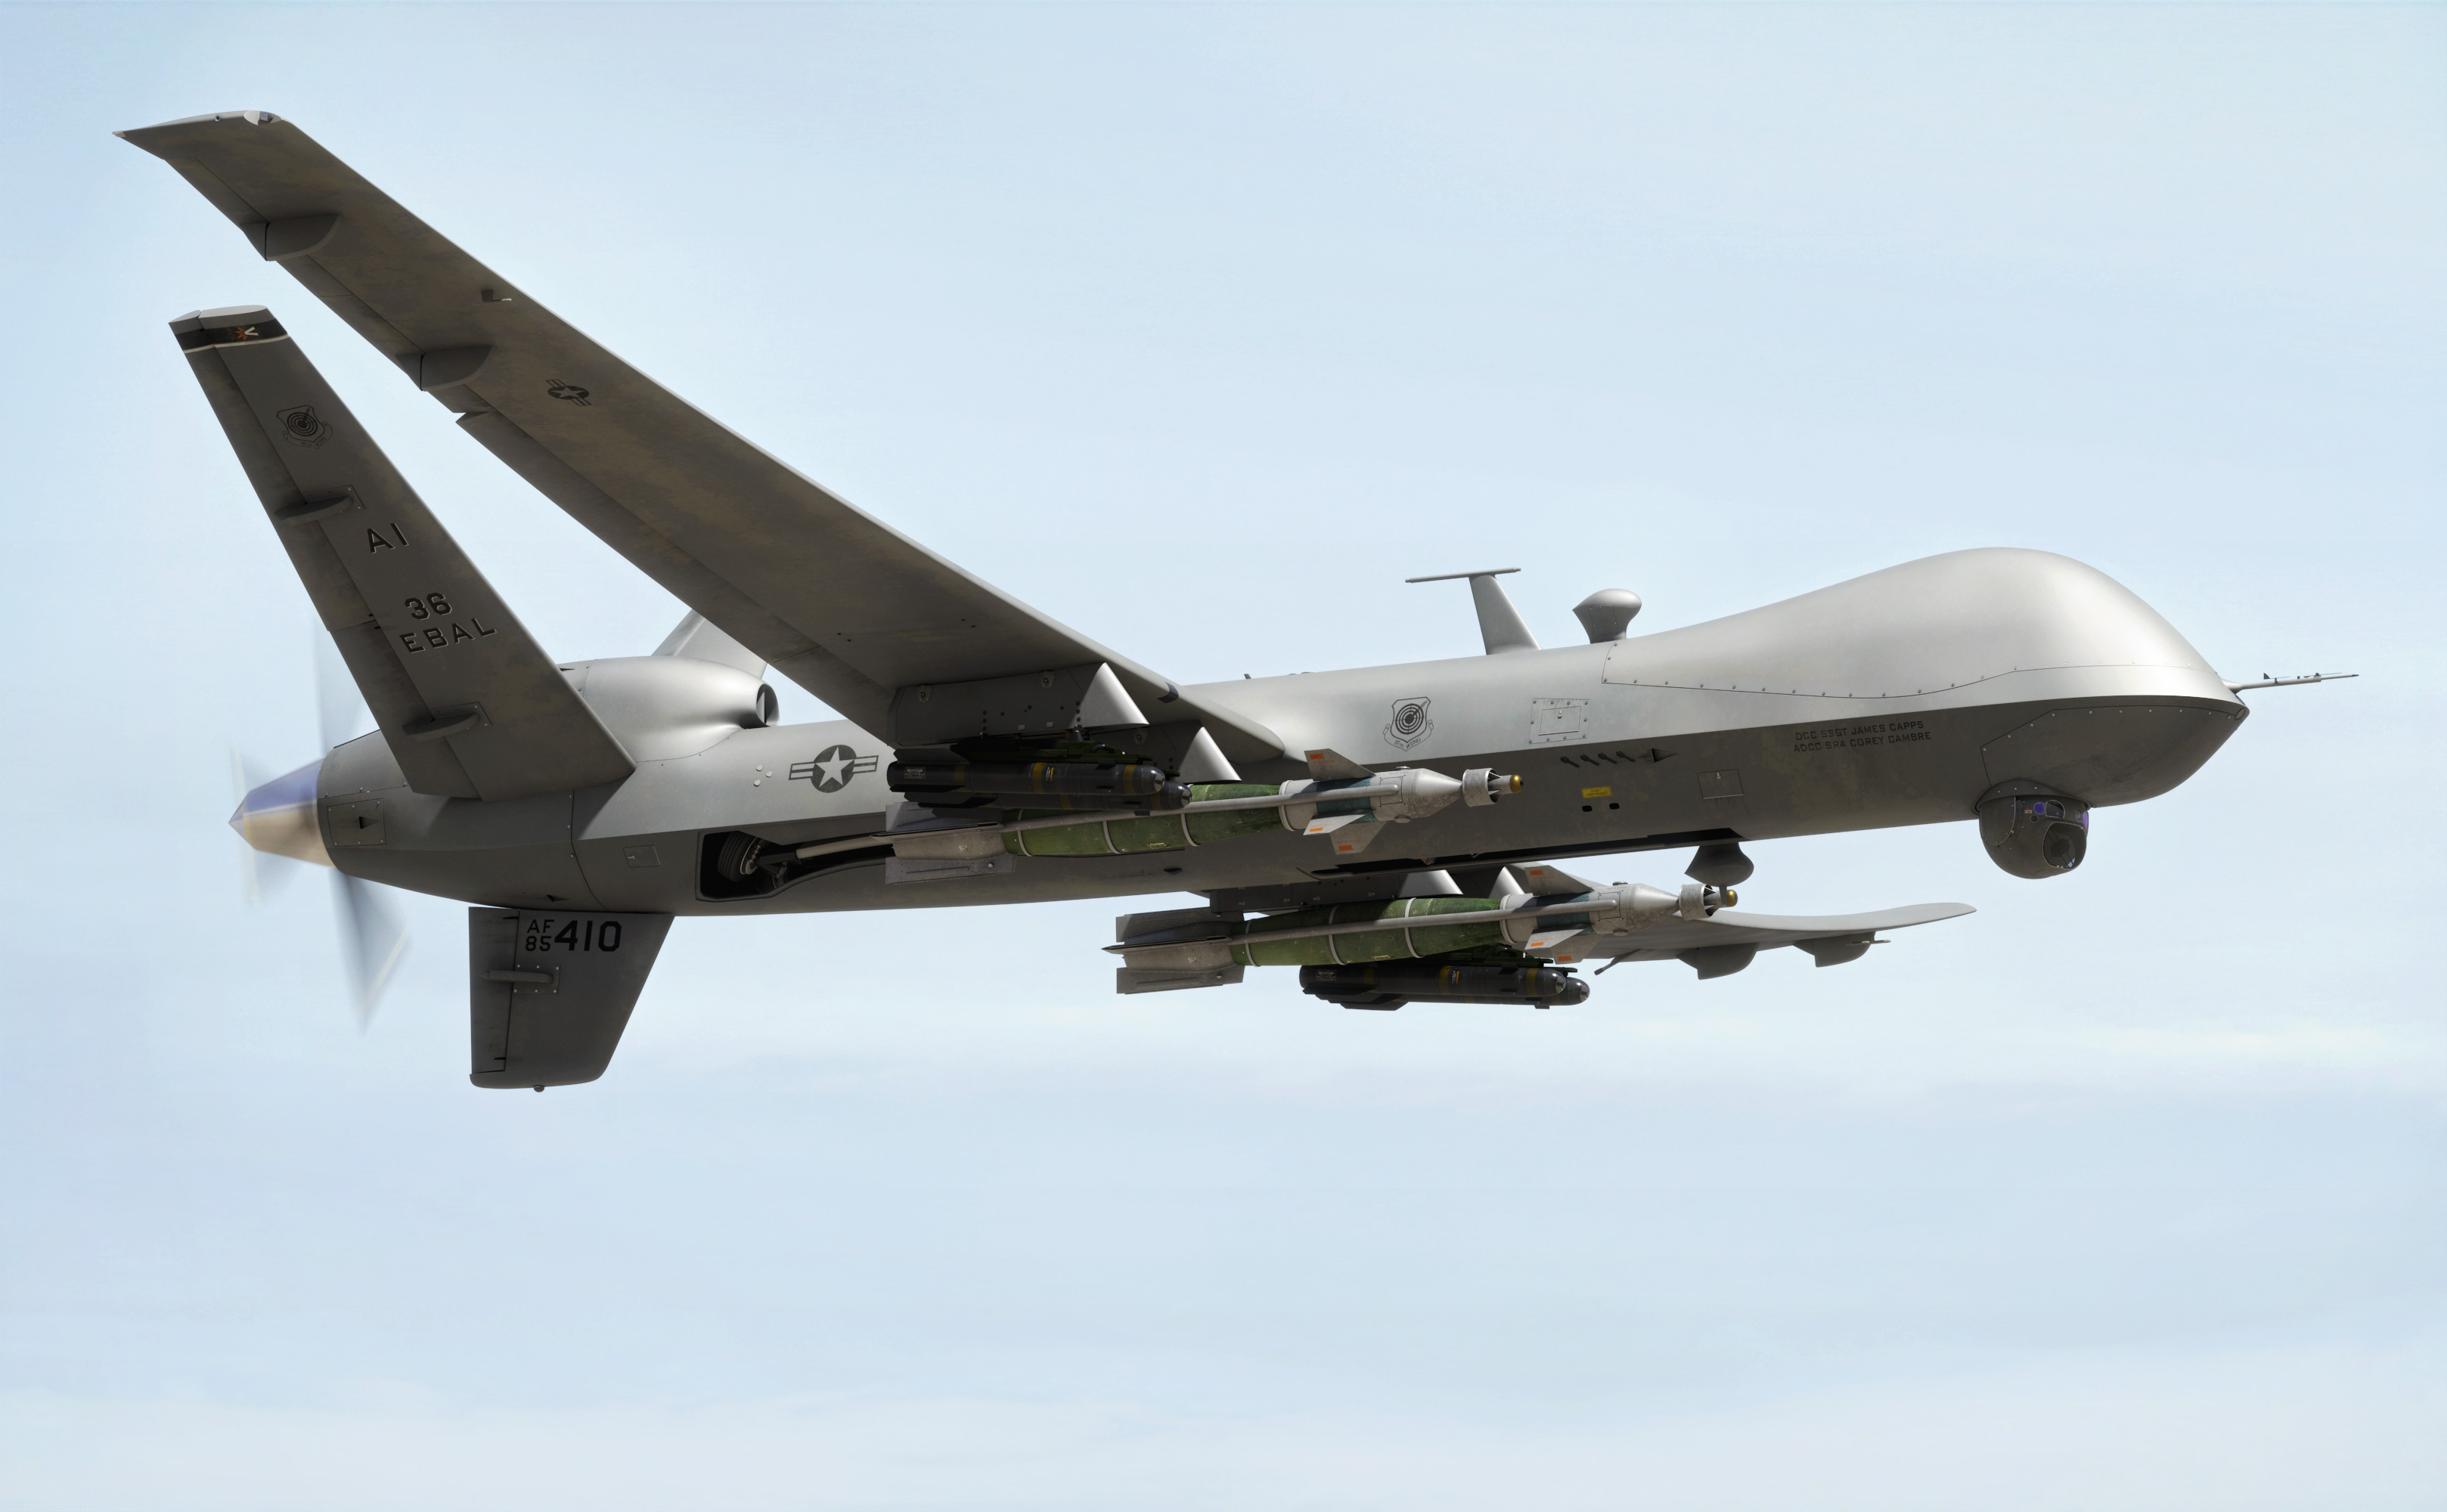 drone missiles with 10701 on Download in addition As Us Modernizes Nuclear Weapons Smaller Leaves Some Uneasy in addition The Uprising MASS PRODUCTION JAEGER 738048228 together with Drones Vs Human Intel together with 2013 12 01 archive.